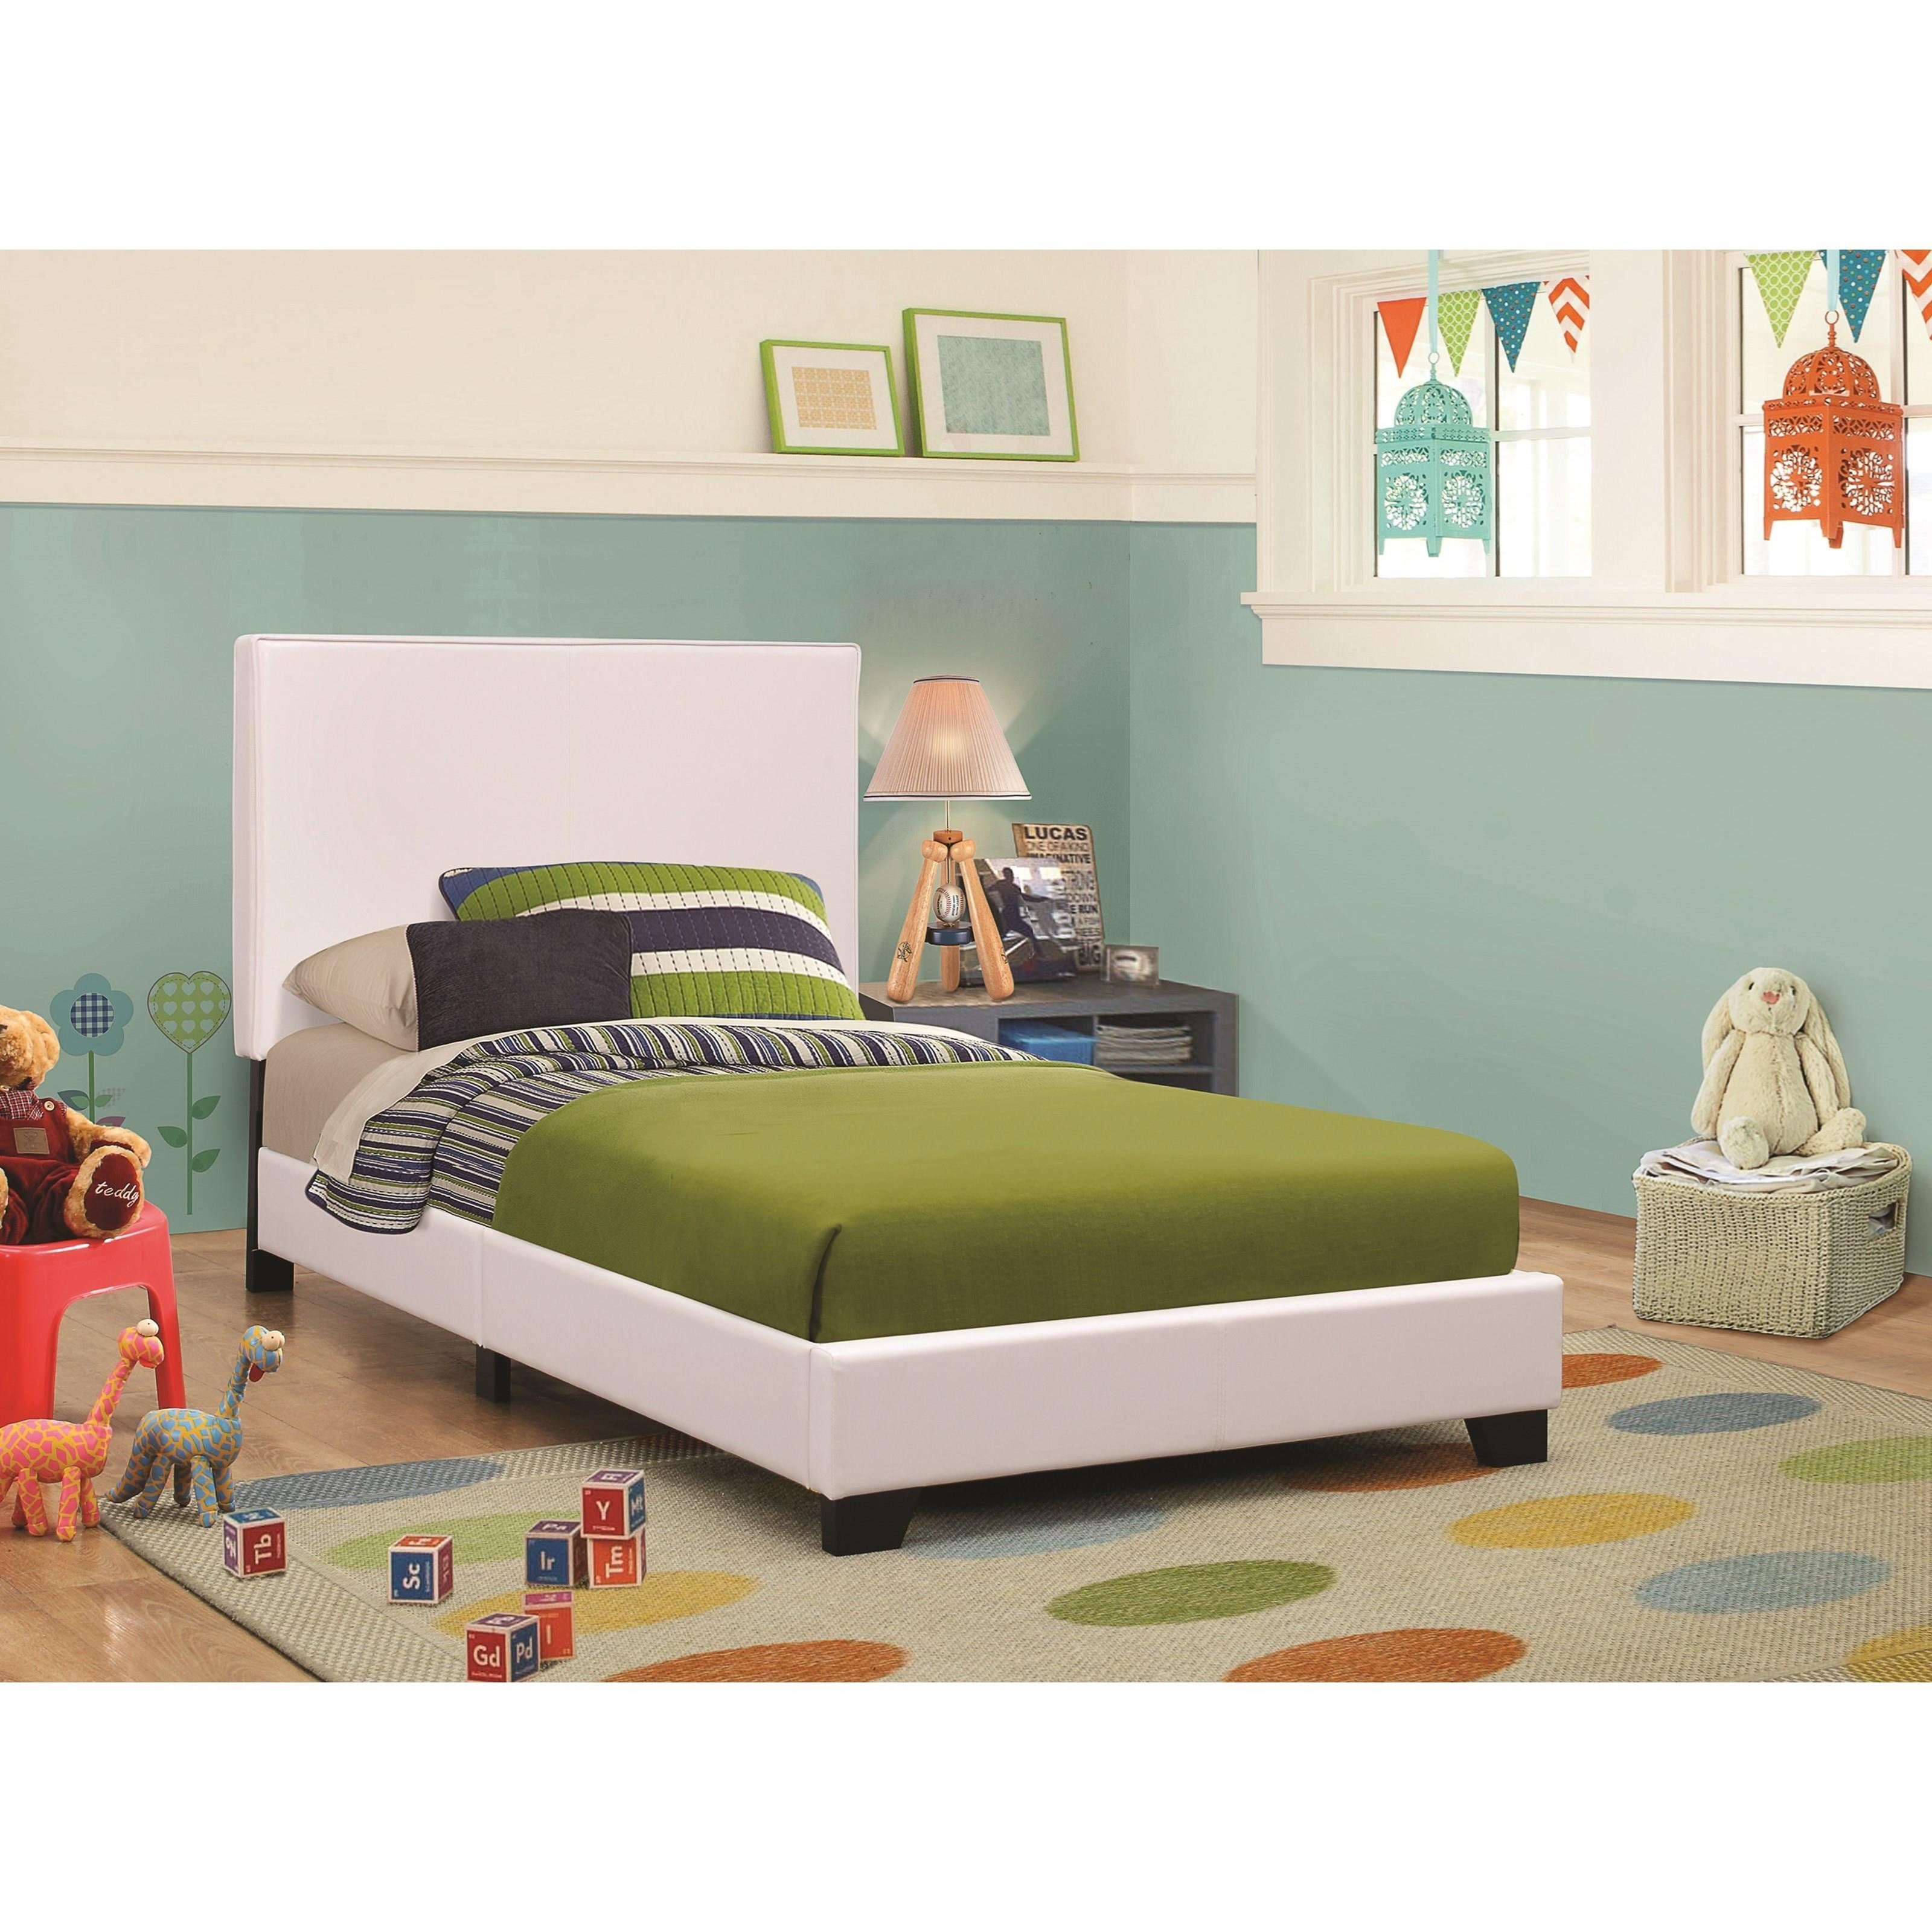 Coaster Upholstered Beds Twin Bed - Item Number: 300559T